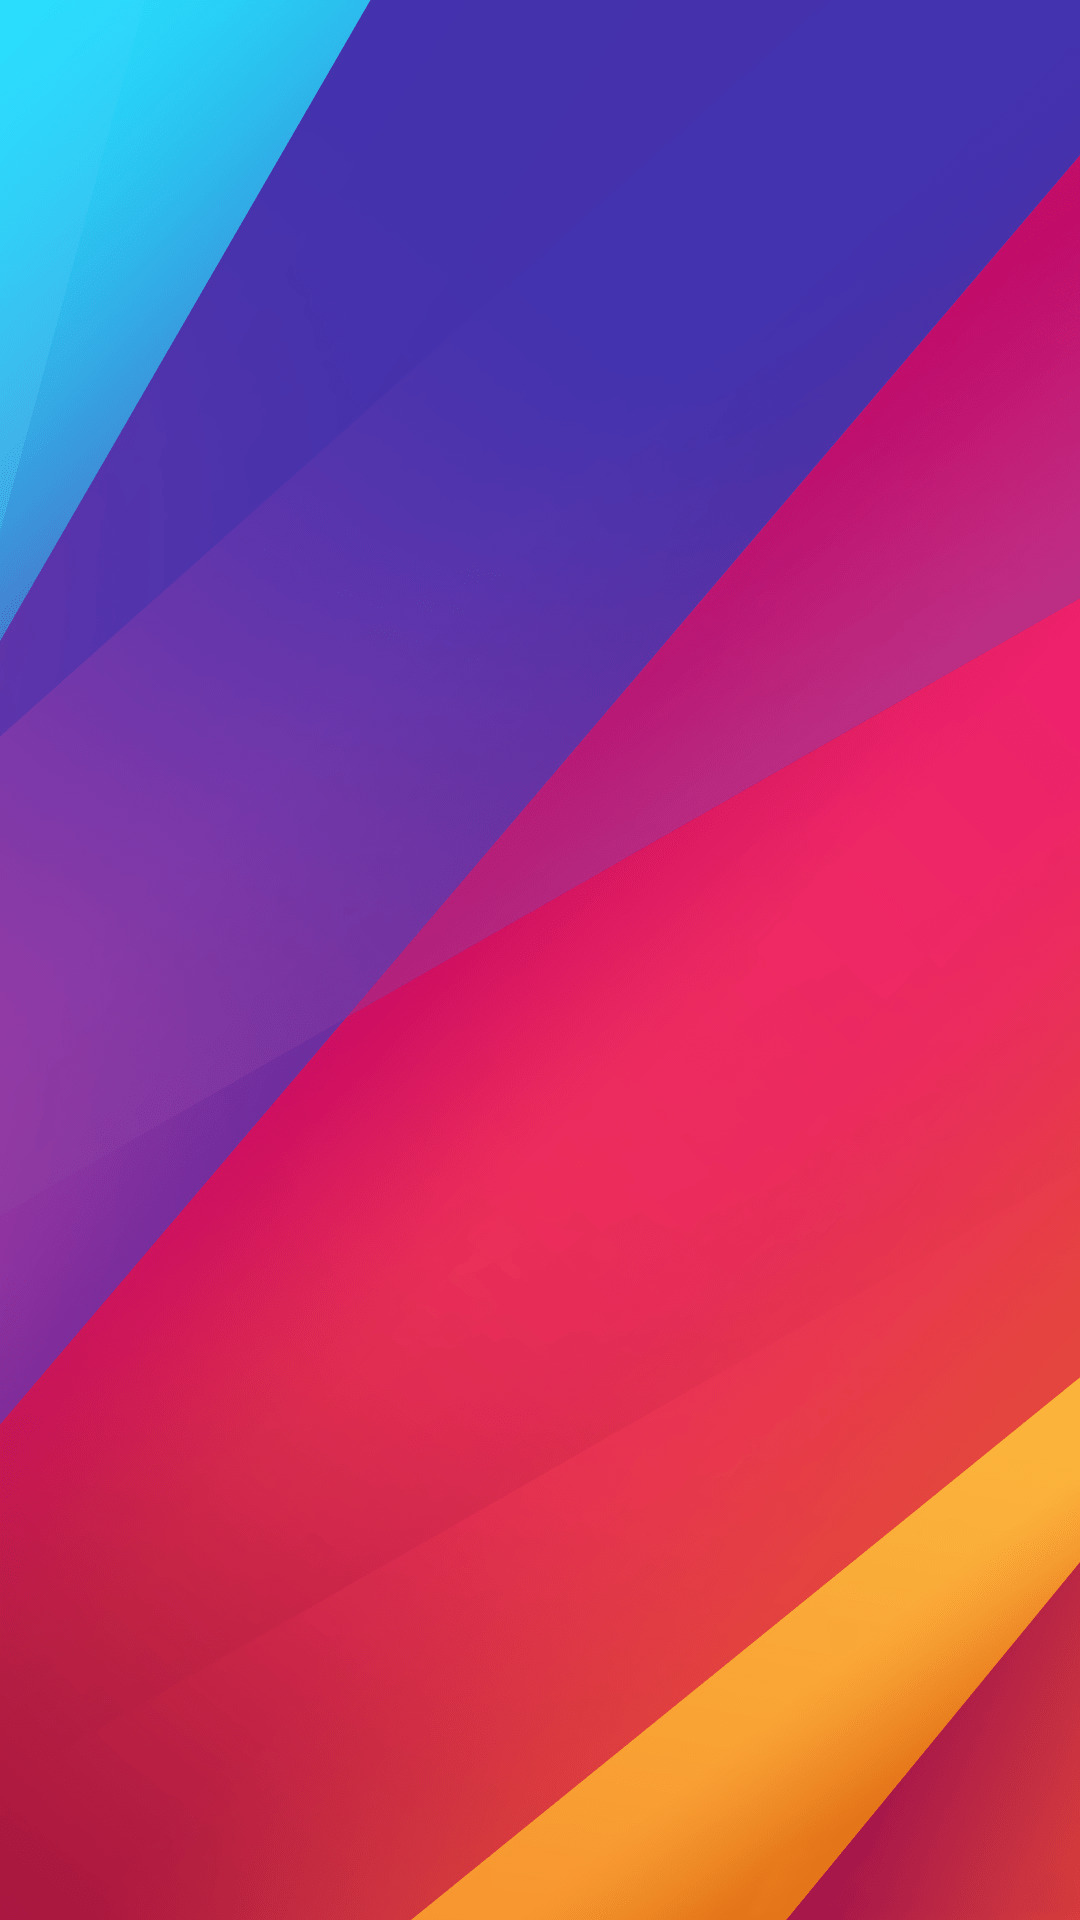 Flyme OS 5.0 HD wallpapers Mohamedovic 1 1